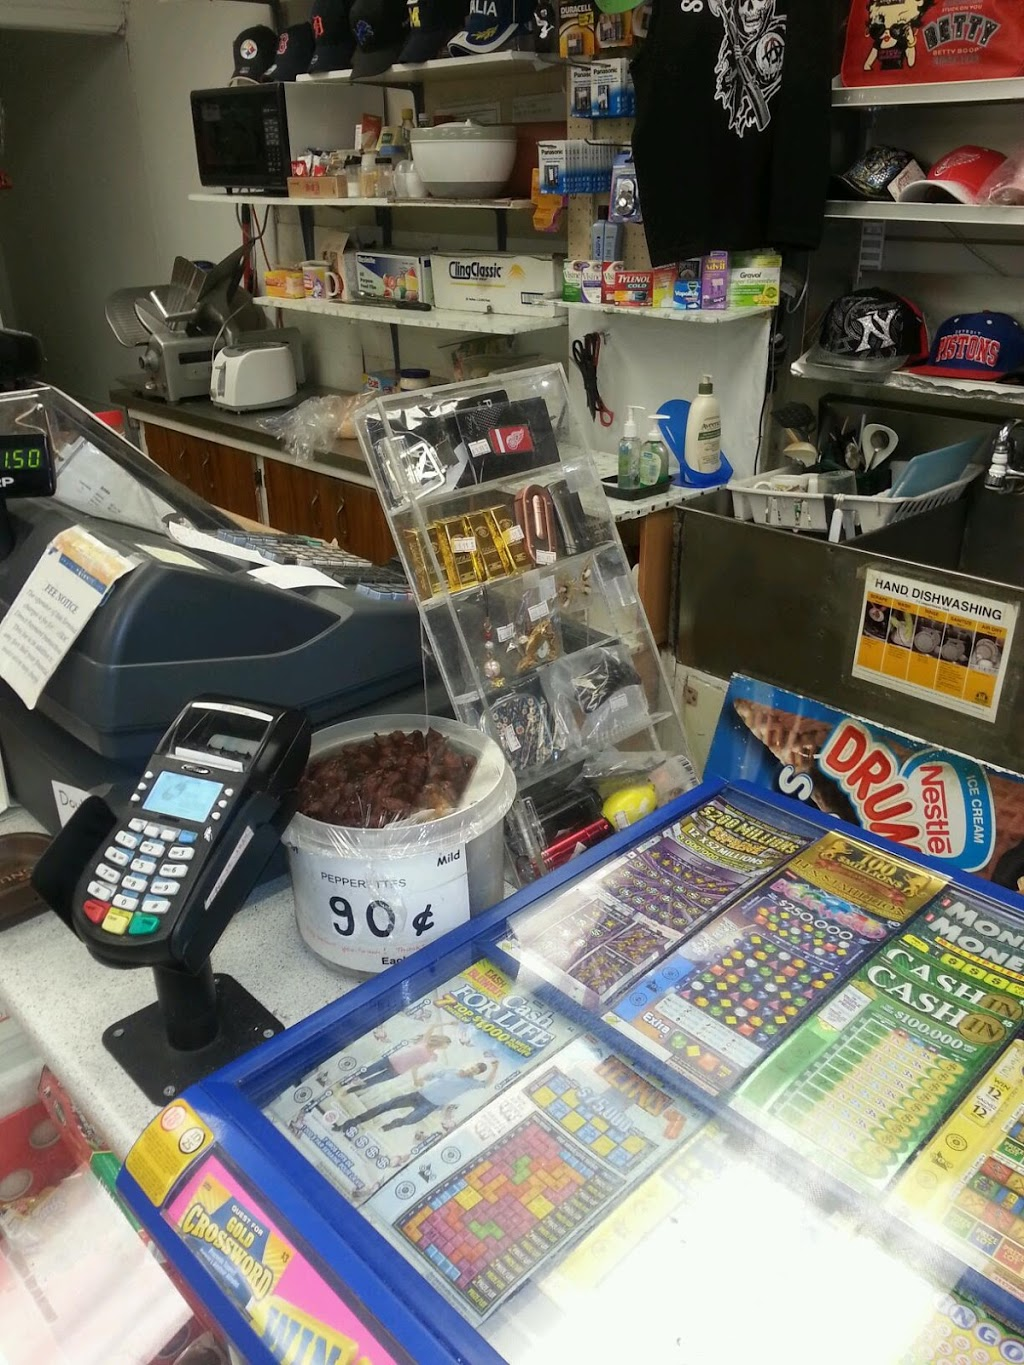 Clancys Variety | convenience store | 2646 Seminole St, Windsor, ON N8Y 1X7, Canada | 5199441442 OR +1 519-944-1442